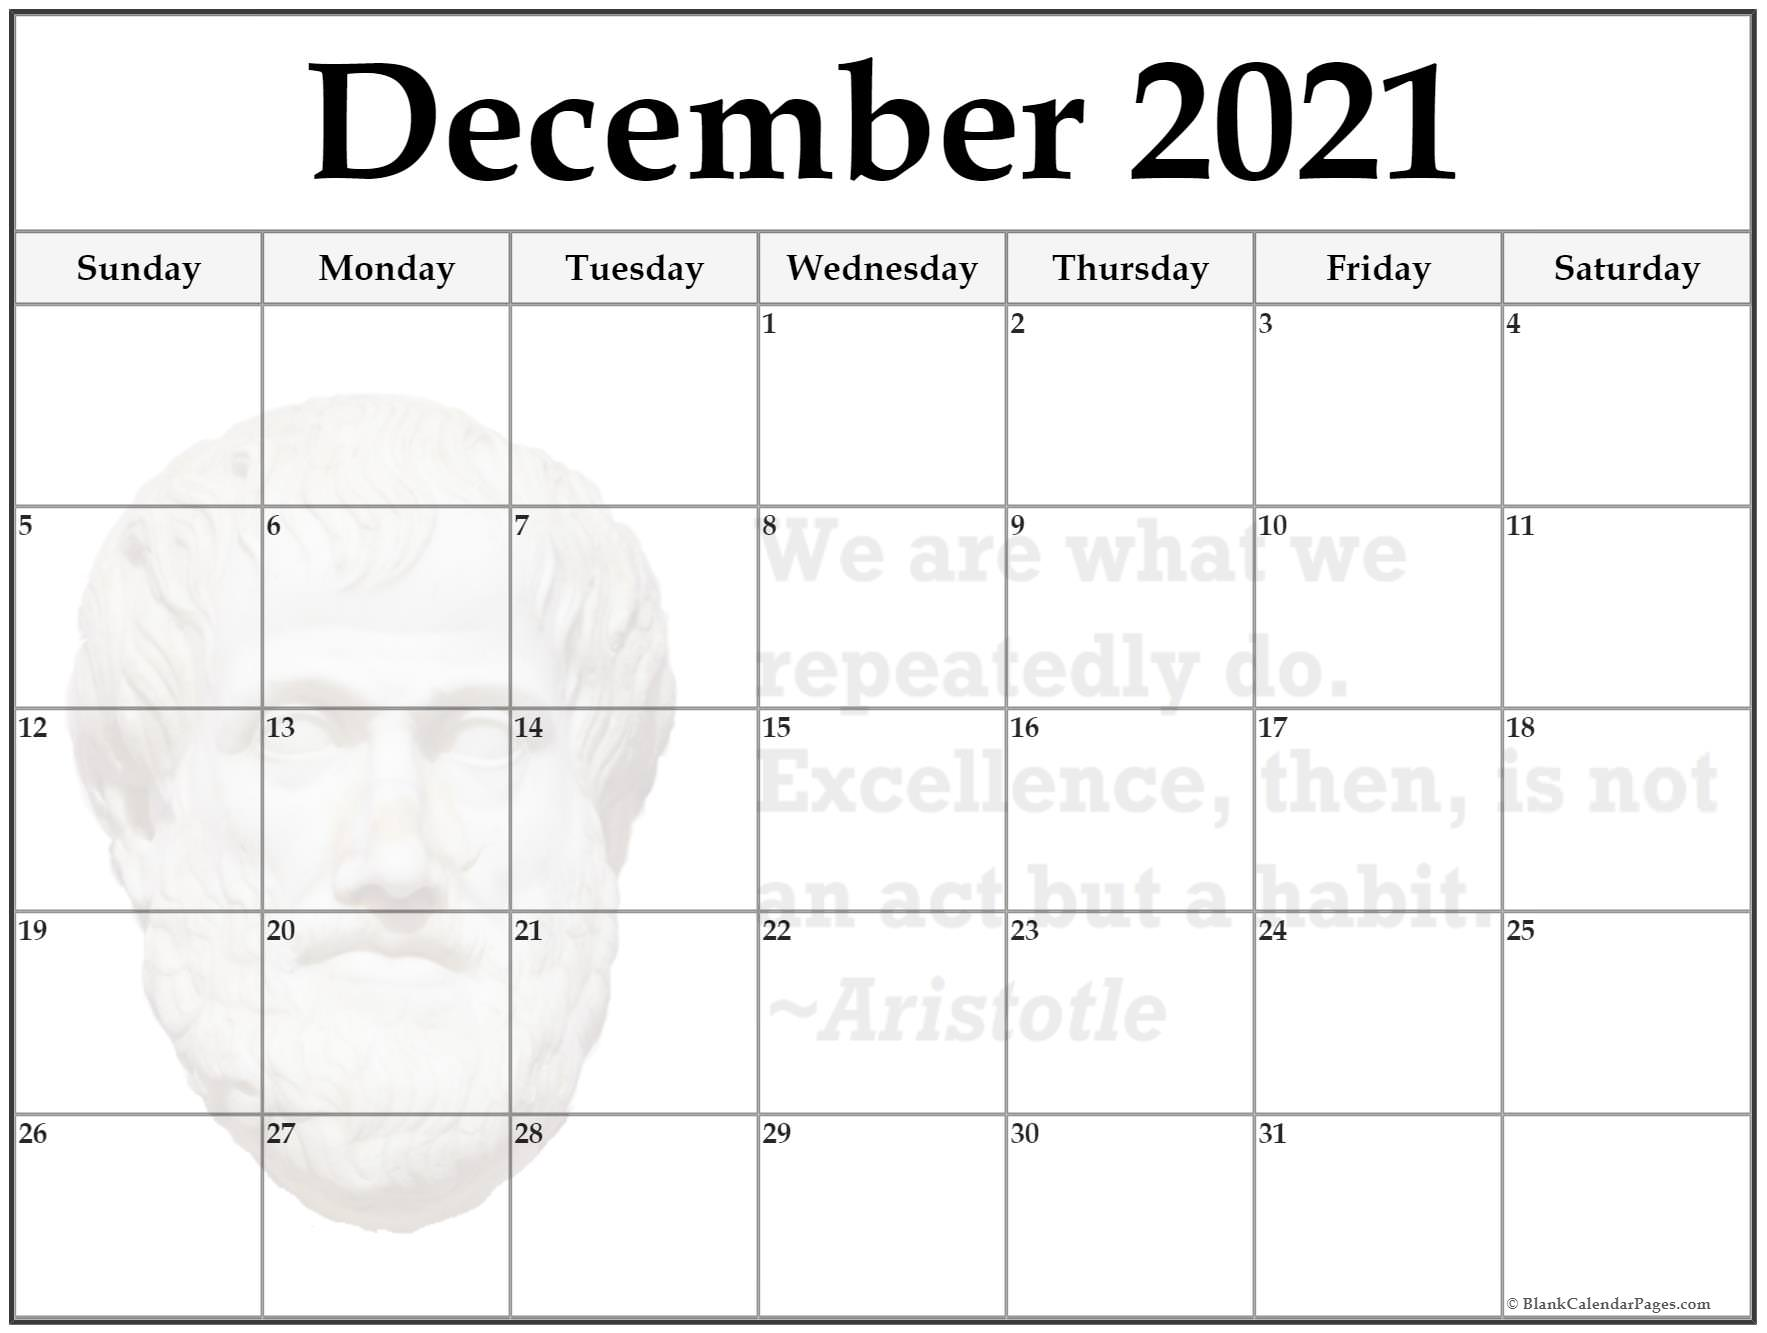 December aristotle calendar We are what we repeatedly do. excellence then is not an act but a habit ~Aristotle